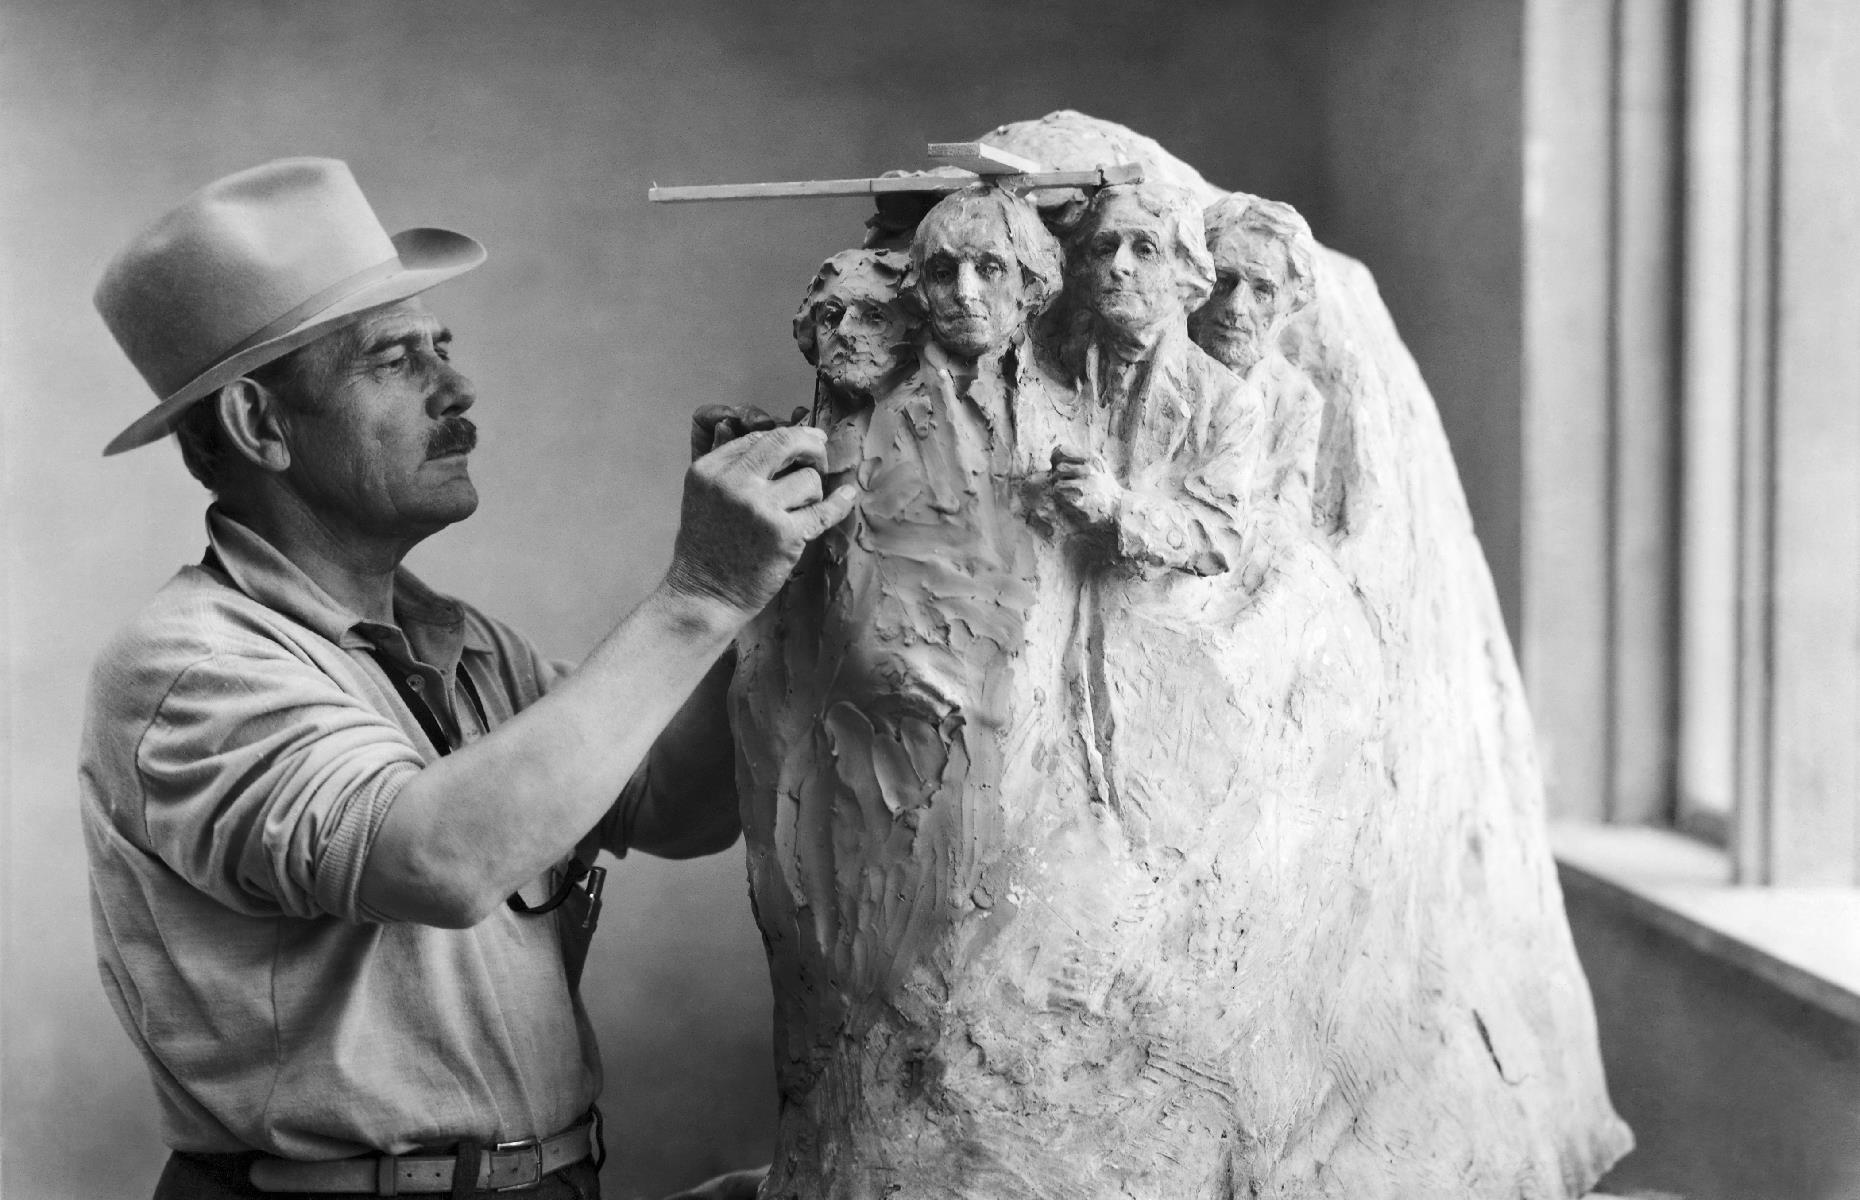 Slide 41 of 47: The four stone presidents of Mount Rushmore –George Washington, Thomas Jefferson, Theodore Roosevelt and Abraham Lincoln – have been watching over South Dakota's Black Hills region since they were completed in 1941. Here we see lauded sculptor Gutzon Borglum in his studio, working on the design for what would become one of America's most iconic attractions.